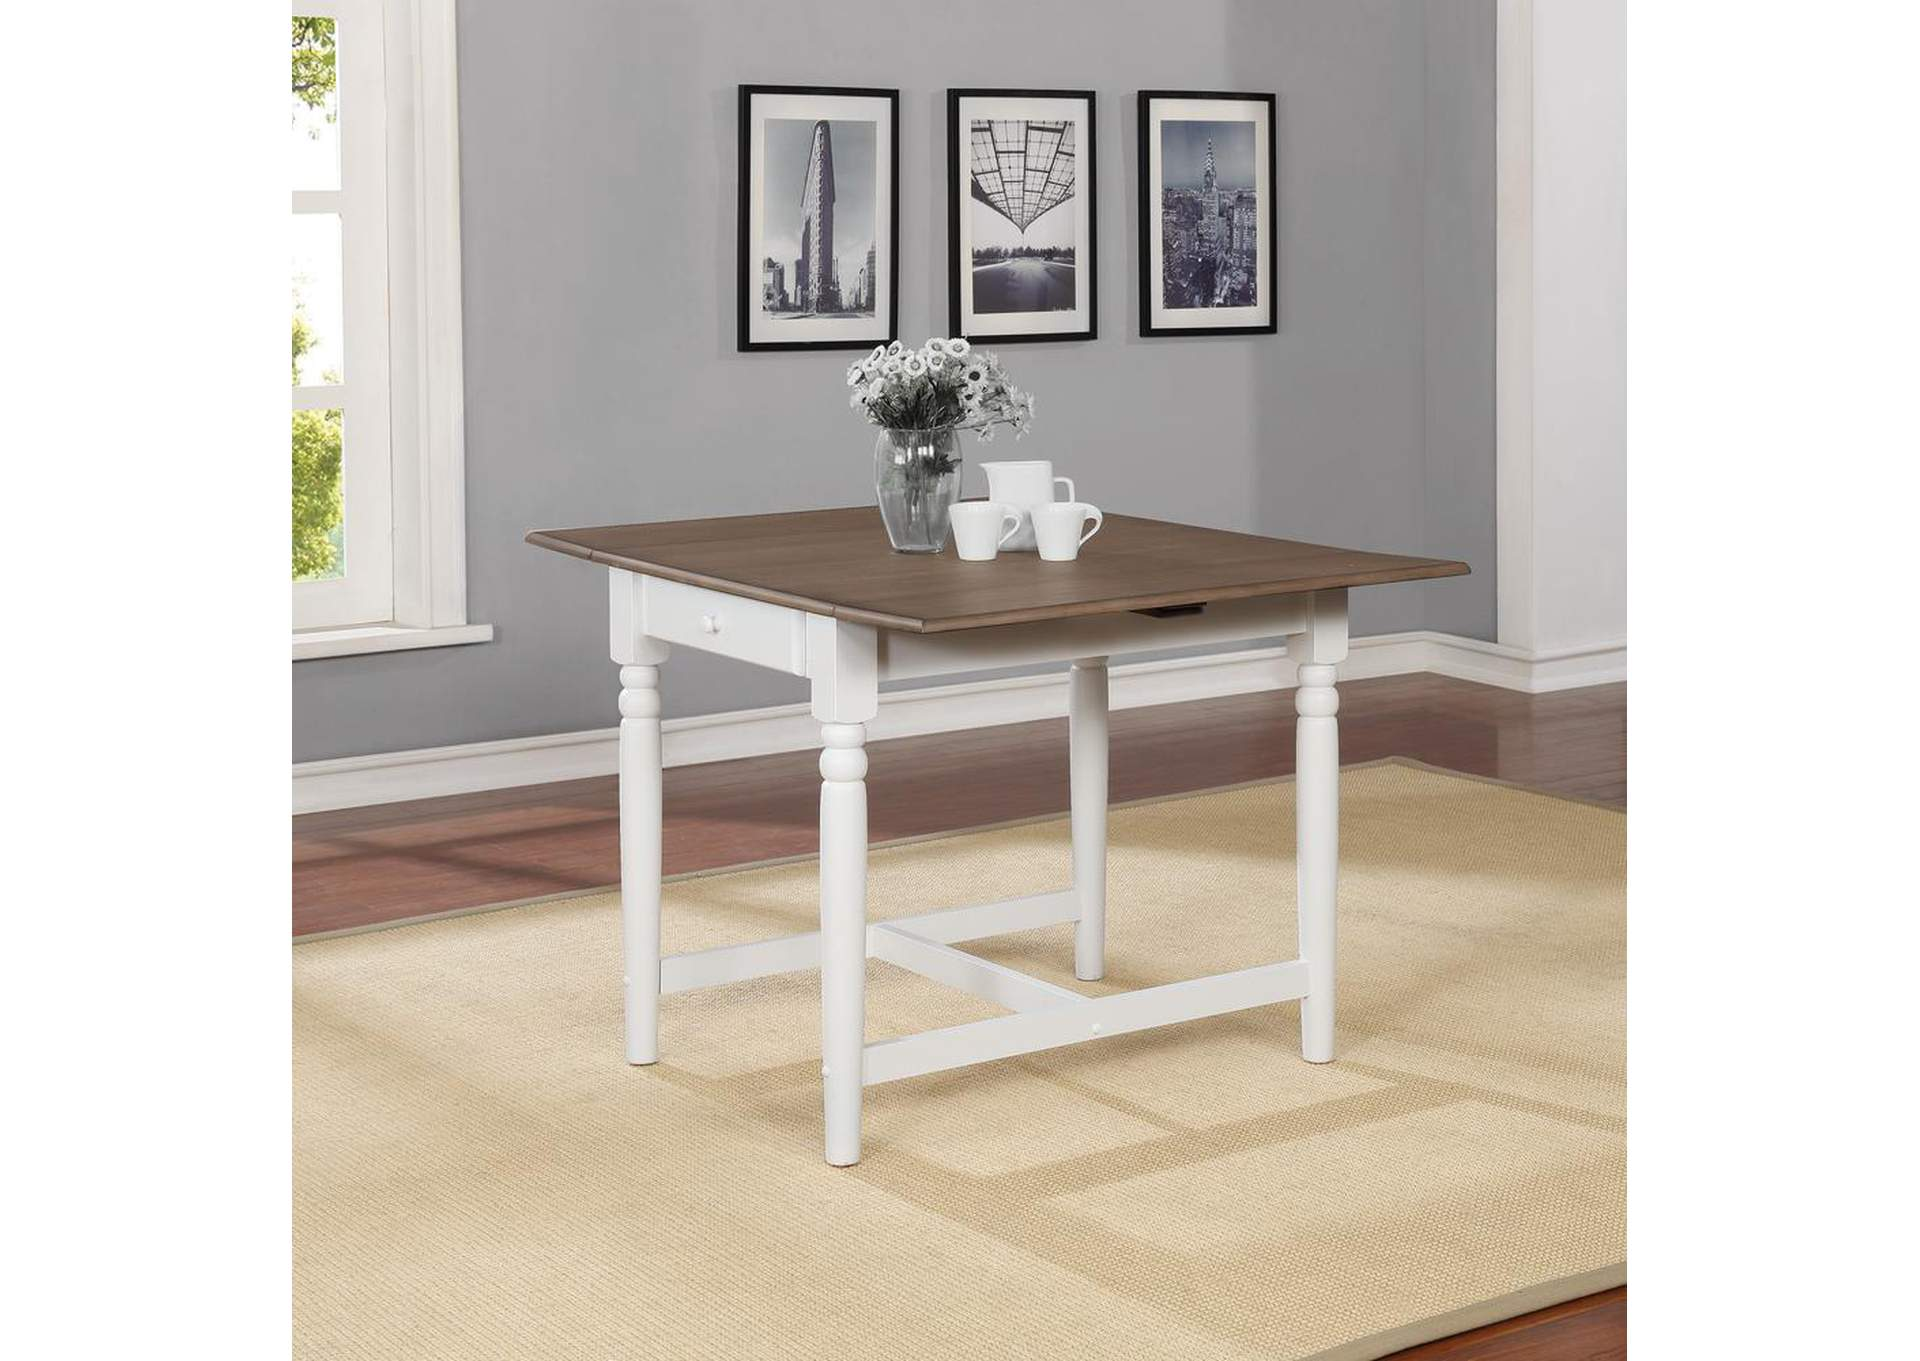 Hesperia Cottage White Dining Table,Coaster Furniture